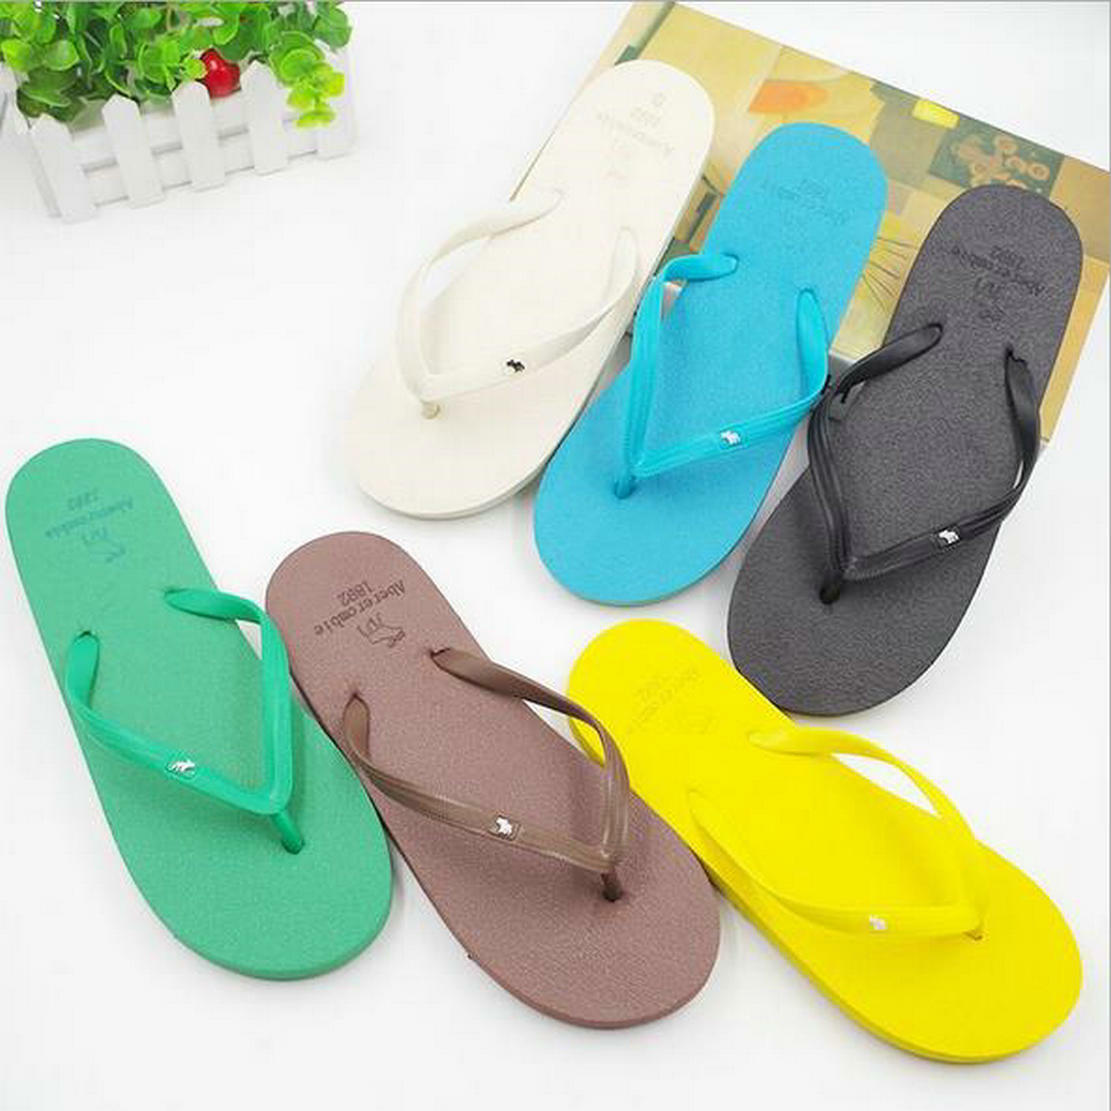 b1c5001648b Details about Women Summer Beach Slippers Flip Flops Shoes Sandals  Camouflage Indoor Outdoor